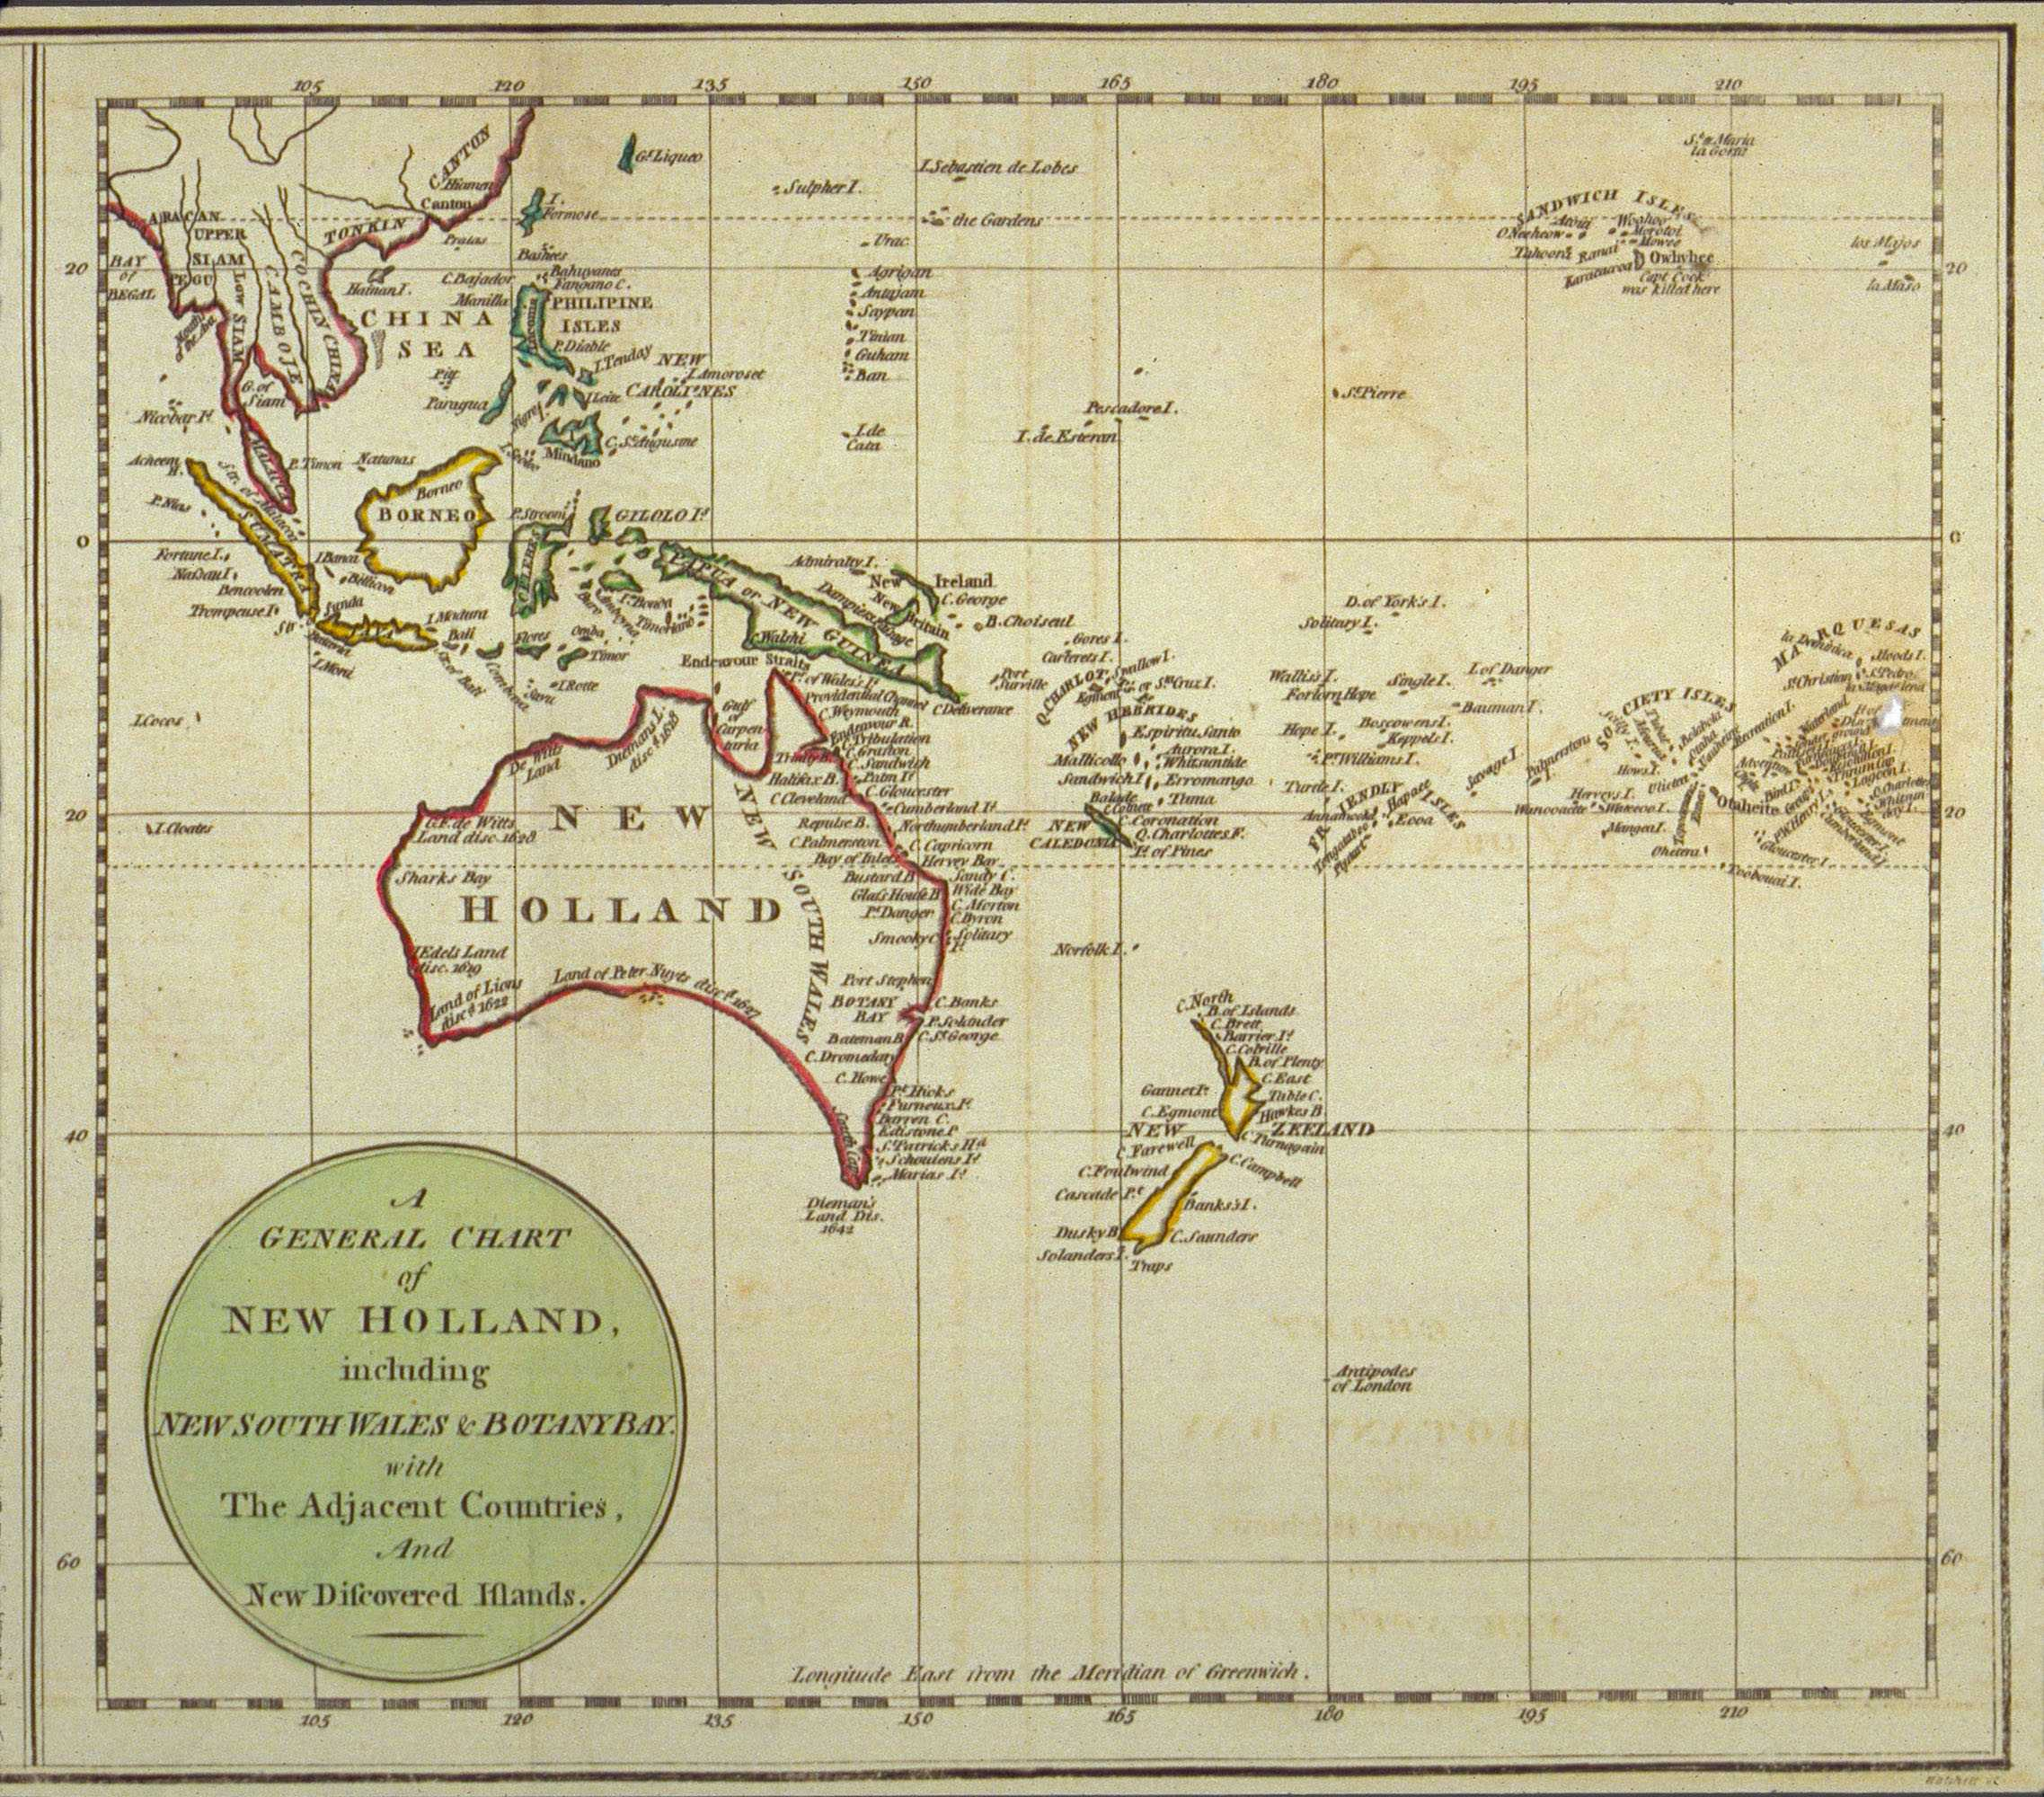 A General Chart of New Holland including New South Wales & Botany Bay with The Adjacent Countries and New Discovered Lands, published in An Historical Narrative of the Discovery of New Holland and New South Wales, London, Fielding and Stockdale, November 1786.